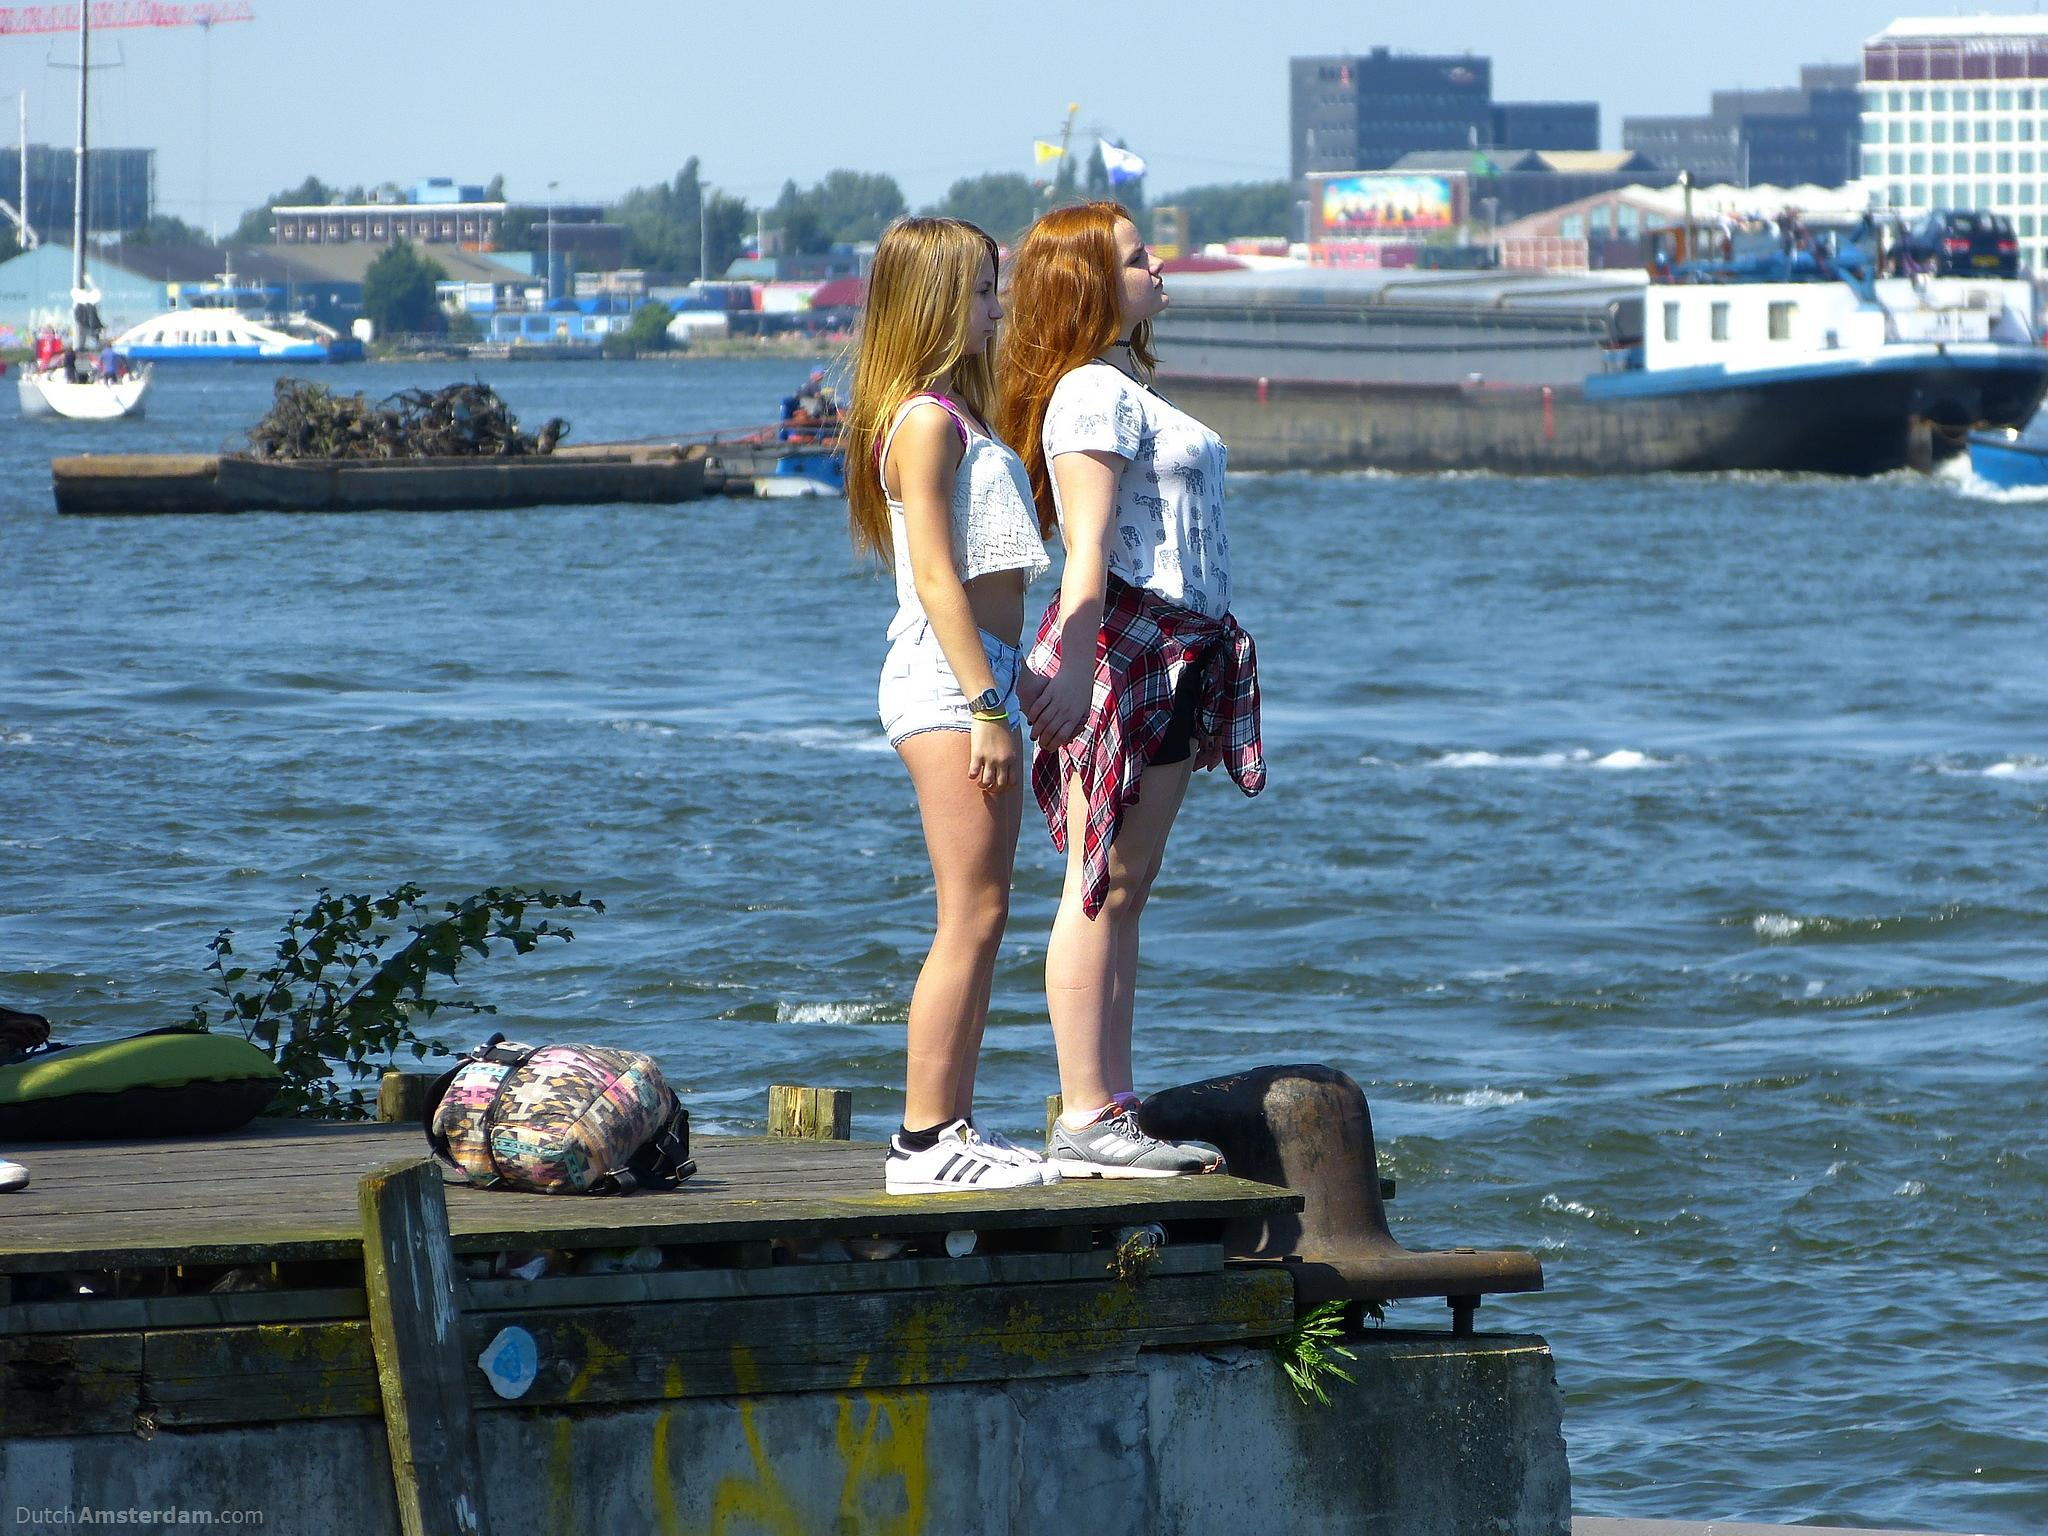 Two girls at the river IJ by DutchAmsterdam